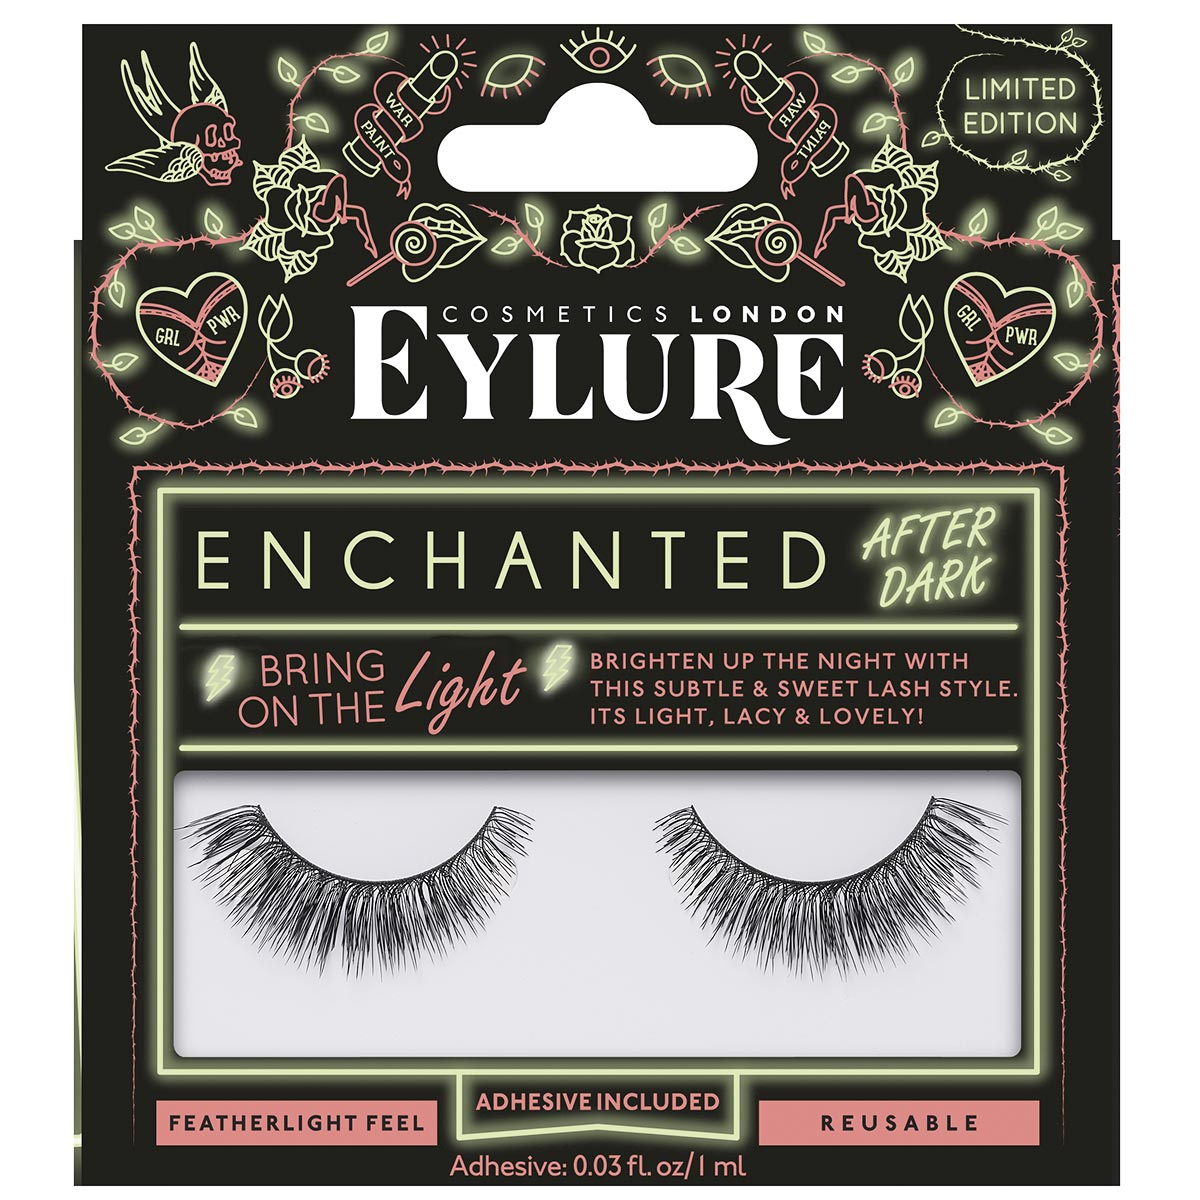 Eylure Enchanted After Dark